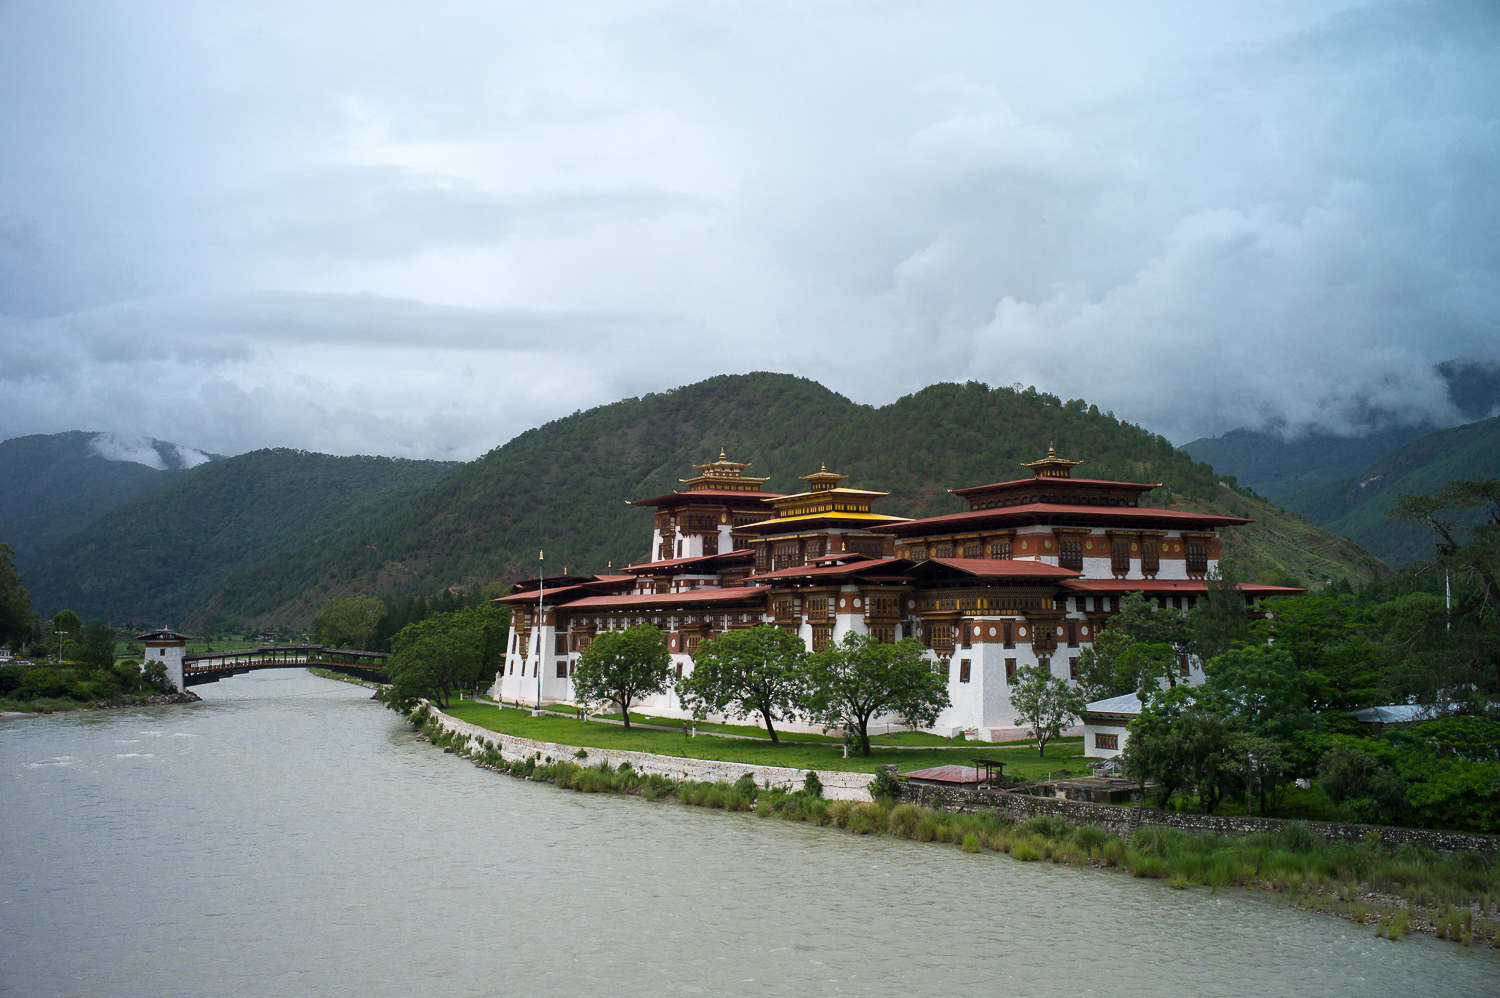 Photogenic Punakha Dzong situated by the river and mountains, Punakha